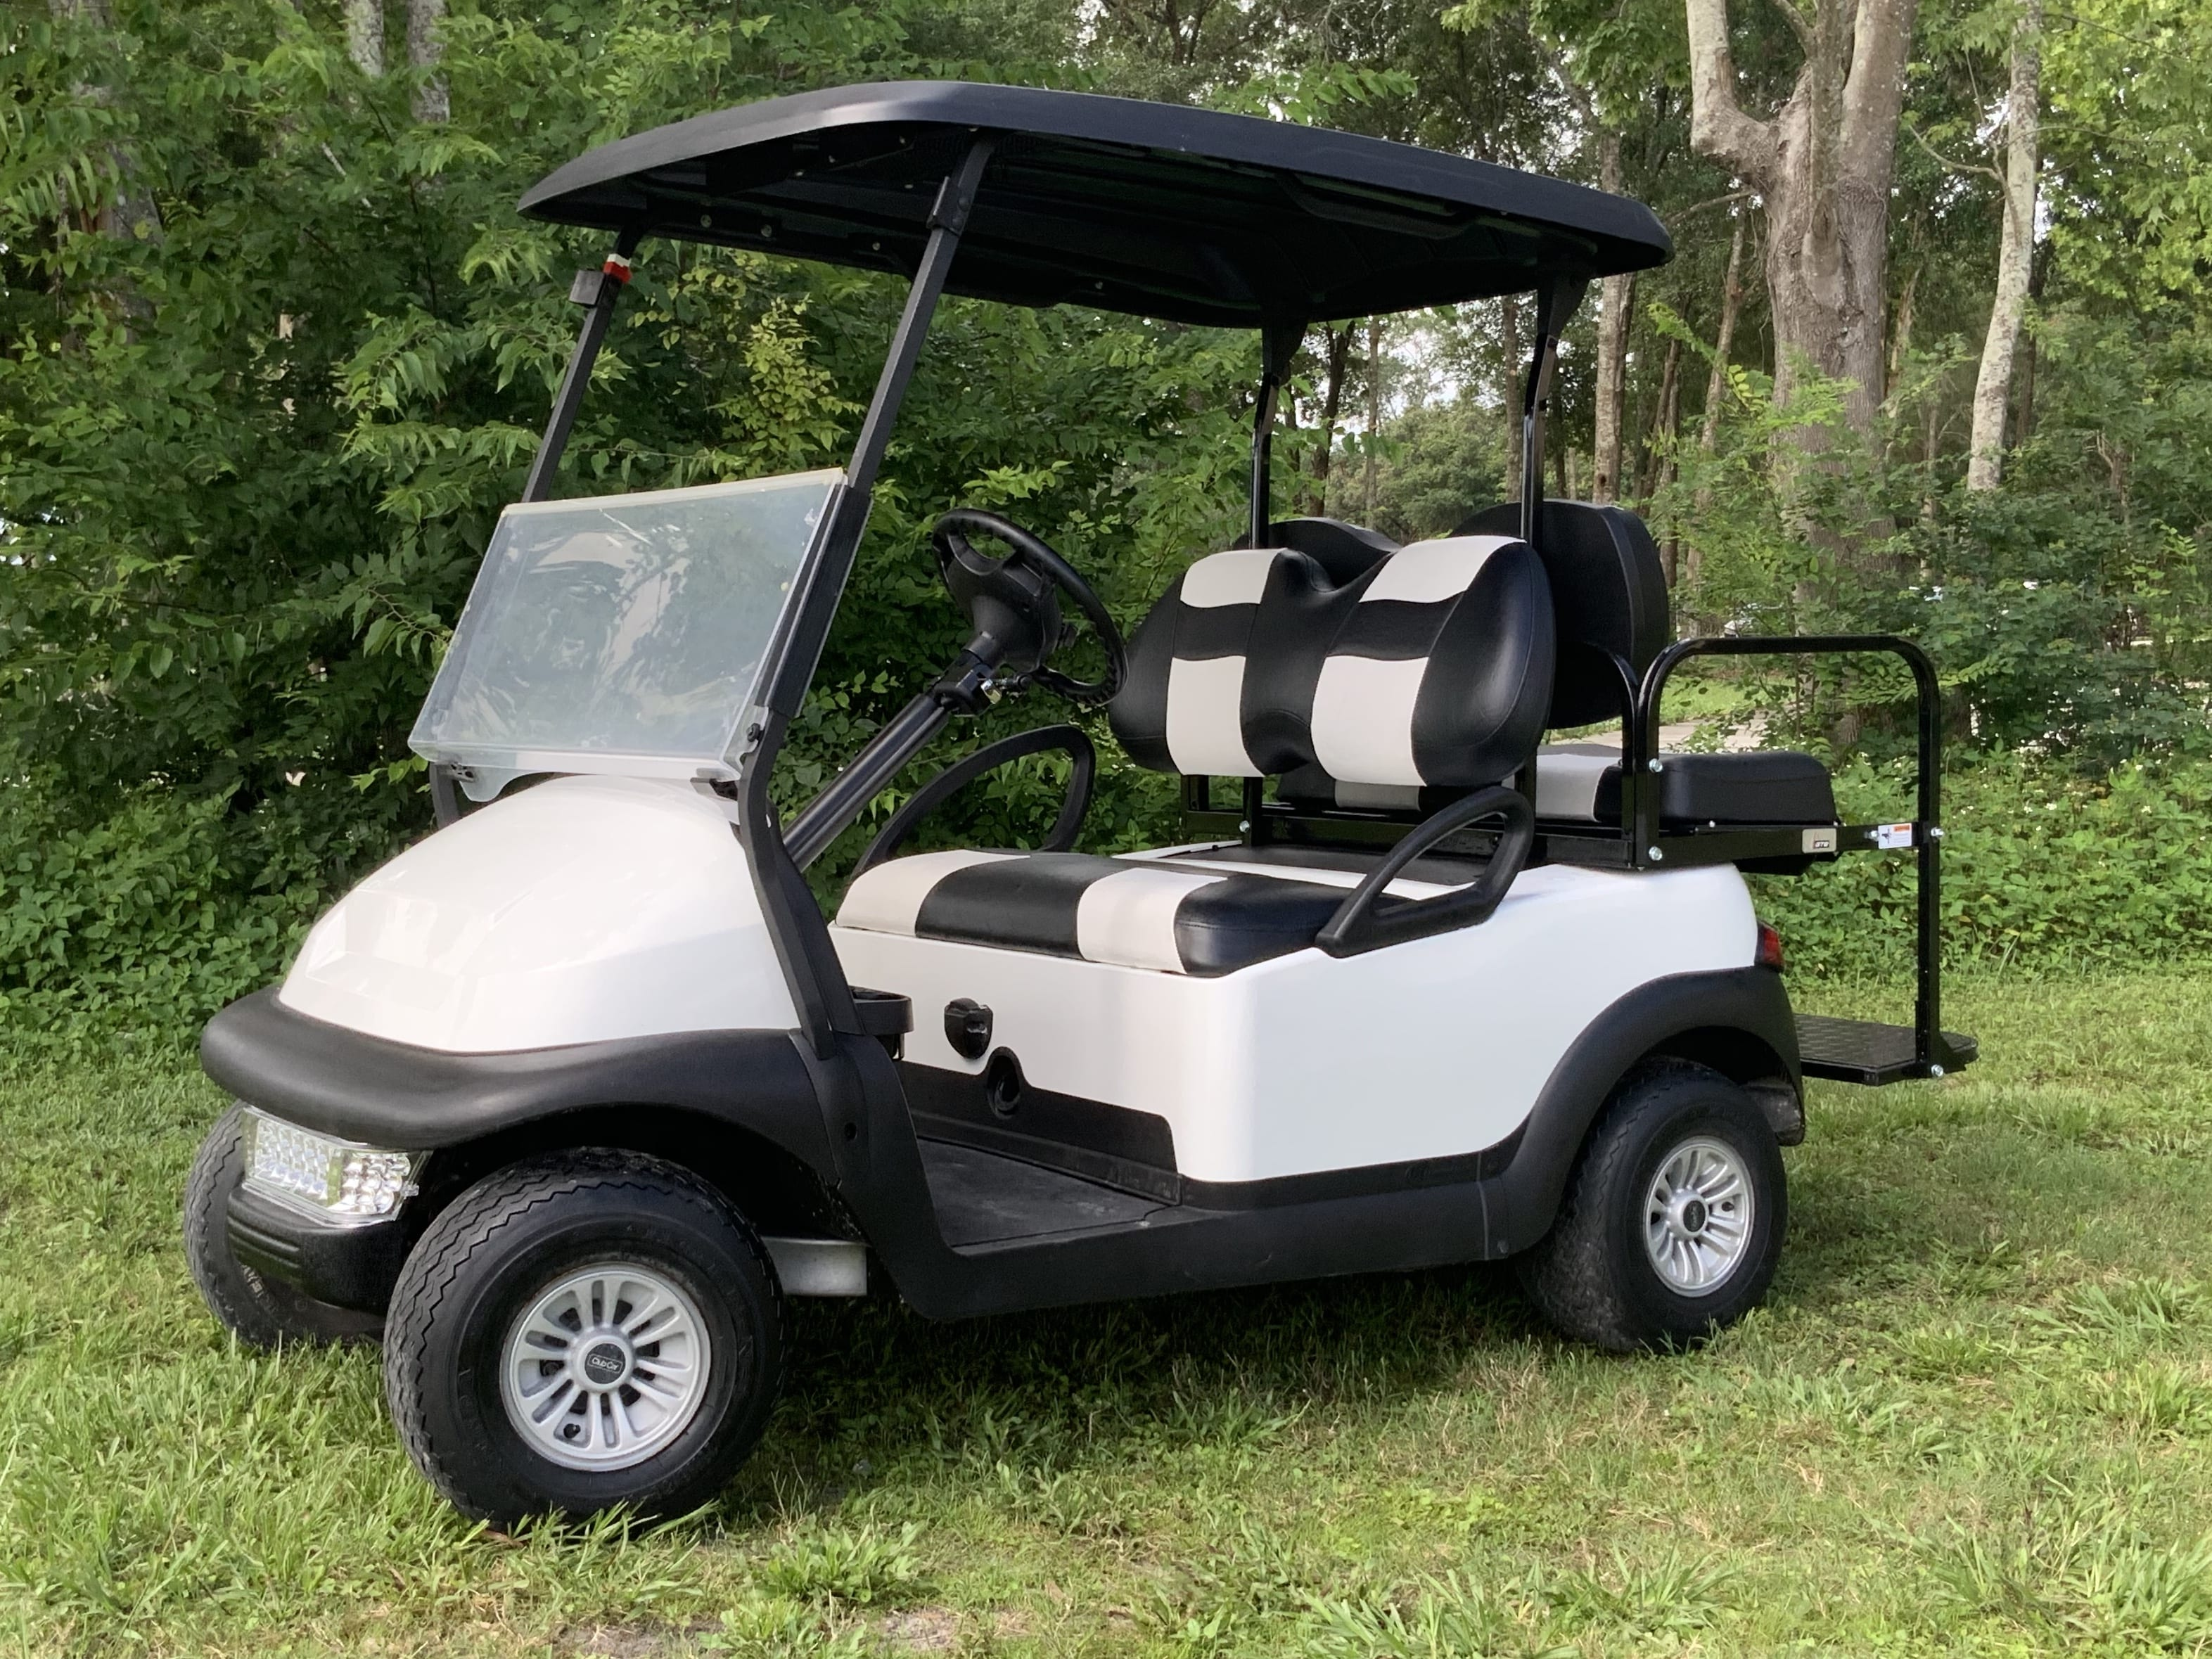 WHITE CLUB CAR WITH BLACK AND WHITE SEATS FOUR PASSENGER